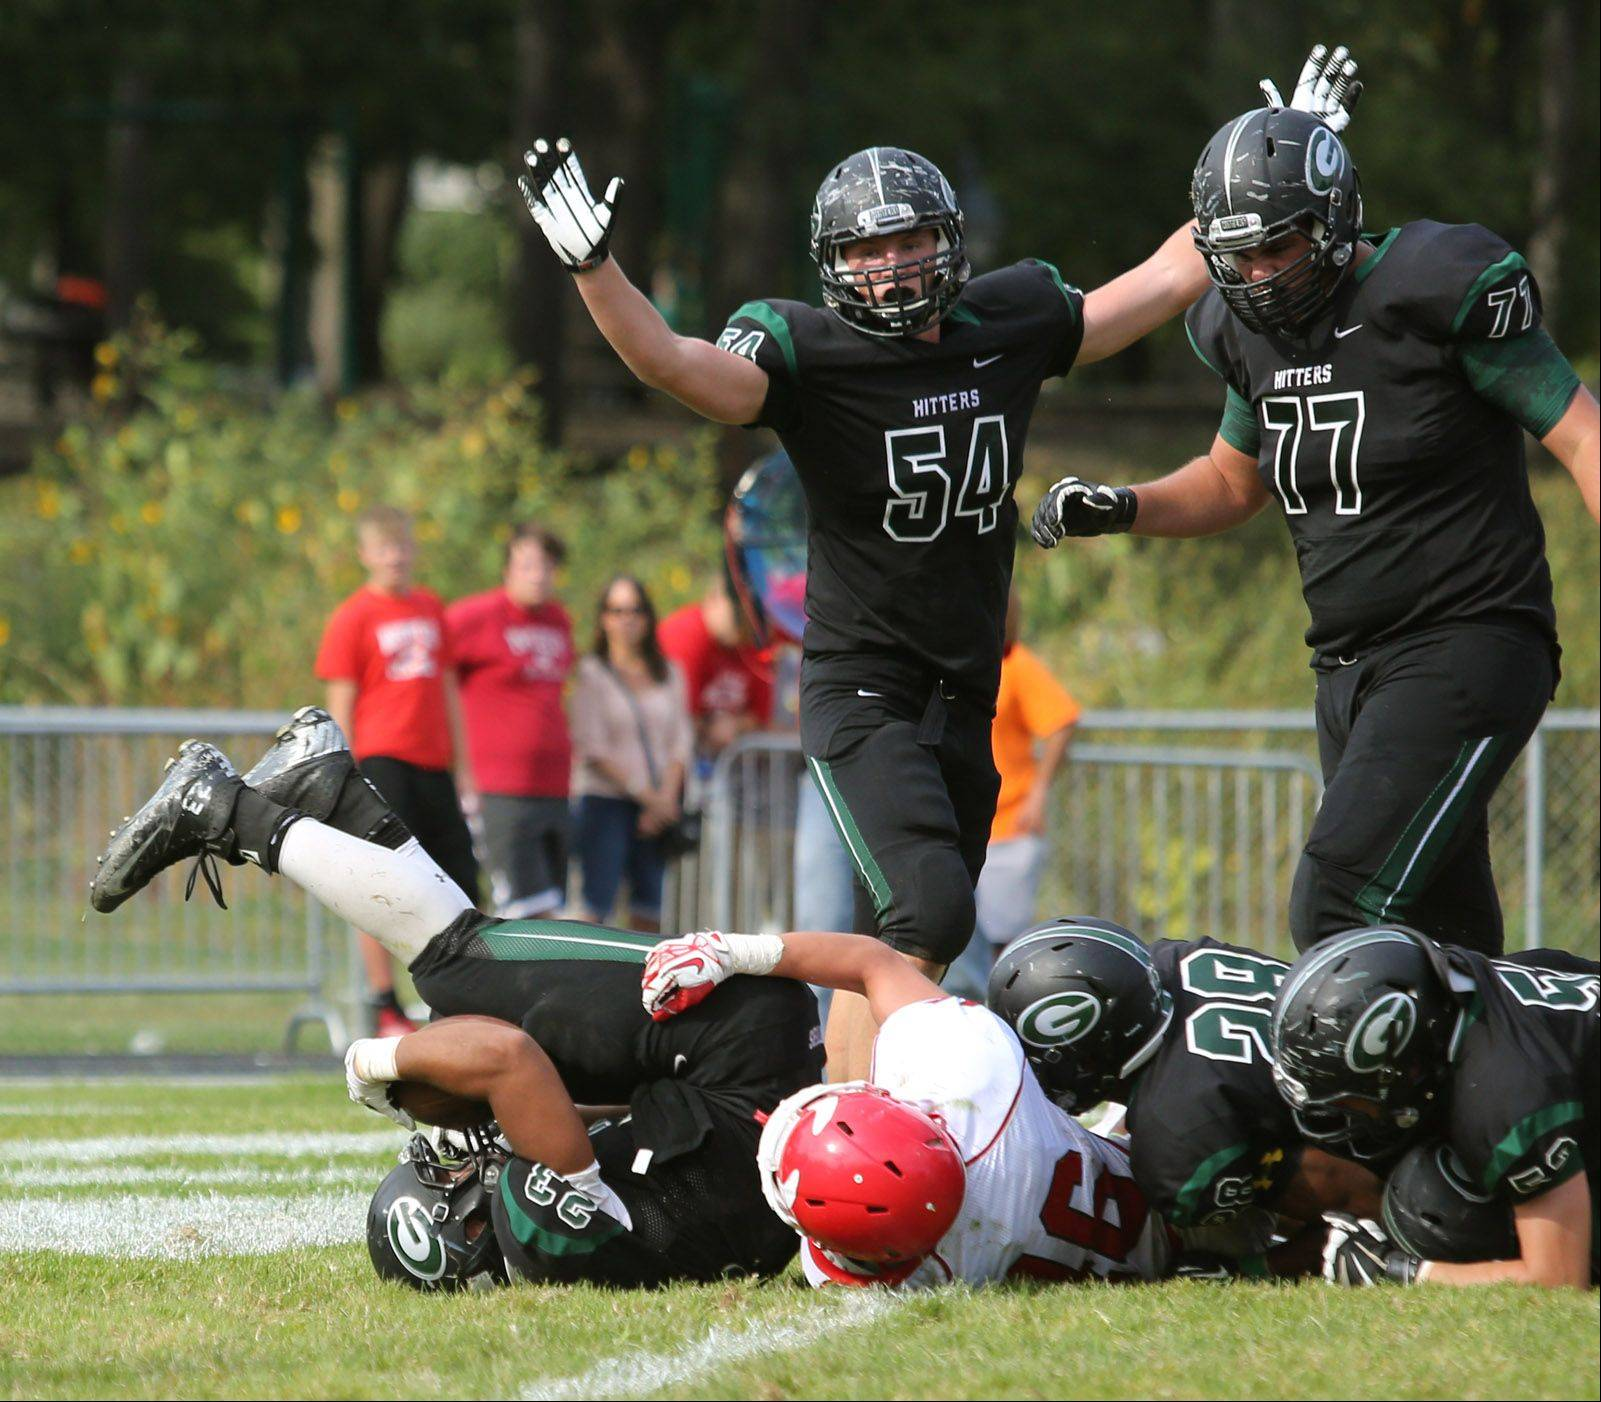 Glenbard West's Scott Andrews scores a second half touchdown against Hinsdale Central. Tedd Clauss, (54), and Eric Shute (77), join in the celebration.